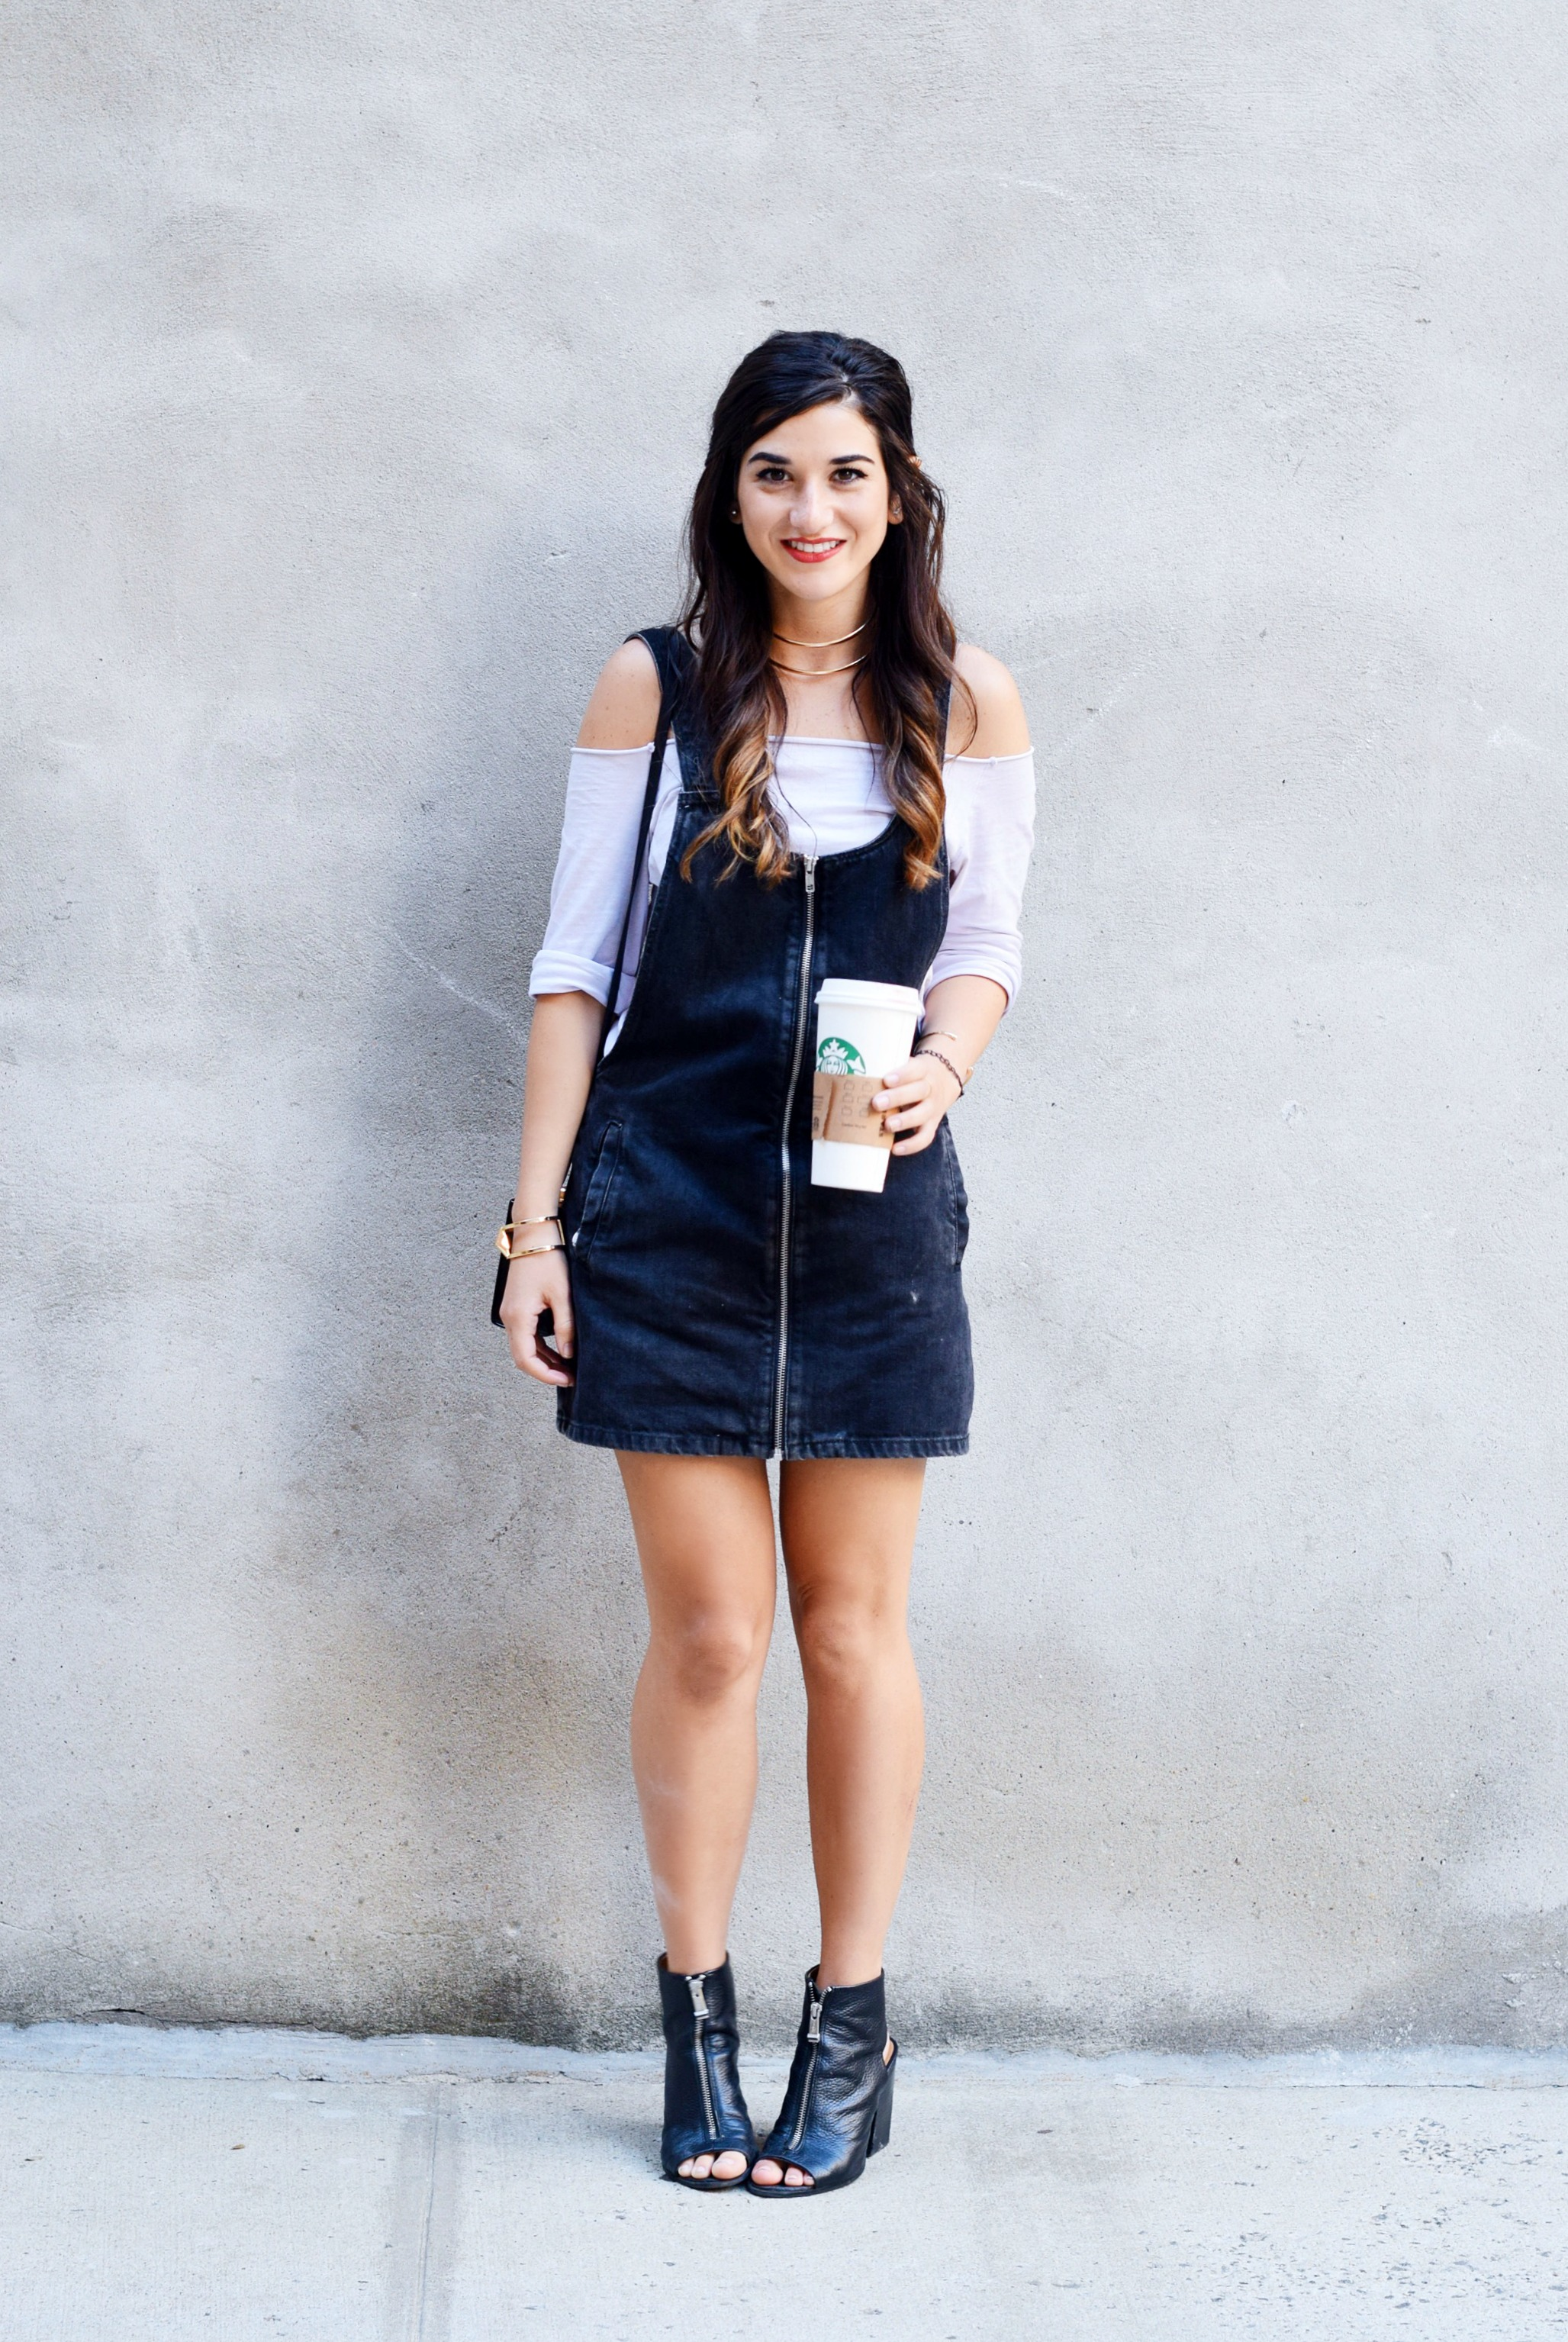 Jean Dress Overalls Off The Shoulder Top Louboutins & Love Fashion Blog Esther Santer Street Style NYC Hair Box Clutch Shoes Denim Gold Jewelry Model Girl Women Zara Trendy Outfit OOTD Bag Inspo Shop Fall Collar Necklace Nordstrom Zipper Black Booties.JPG